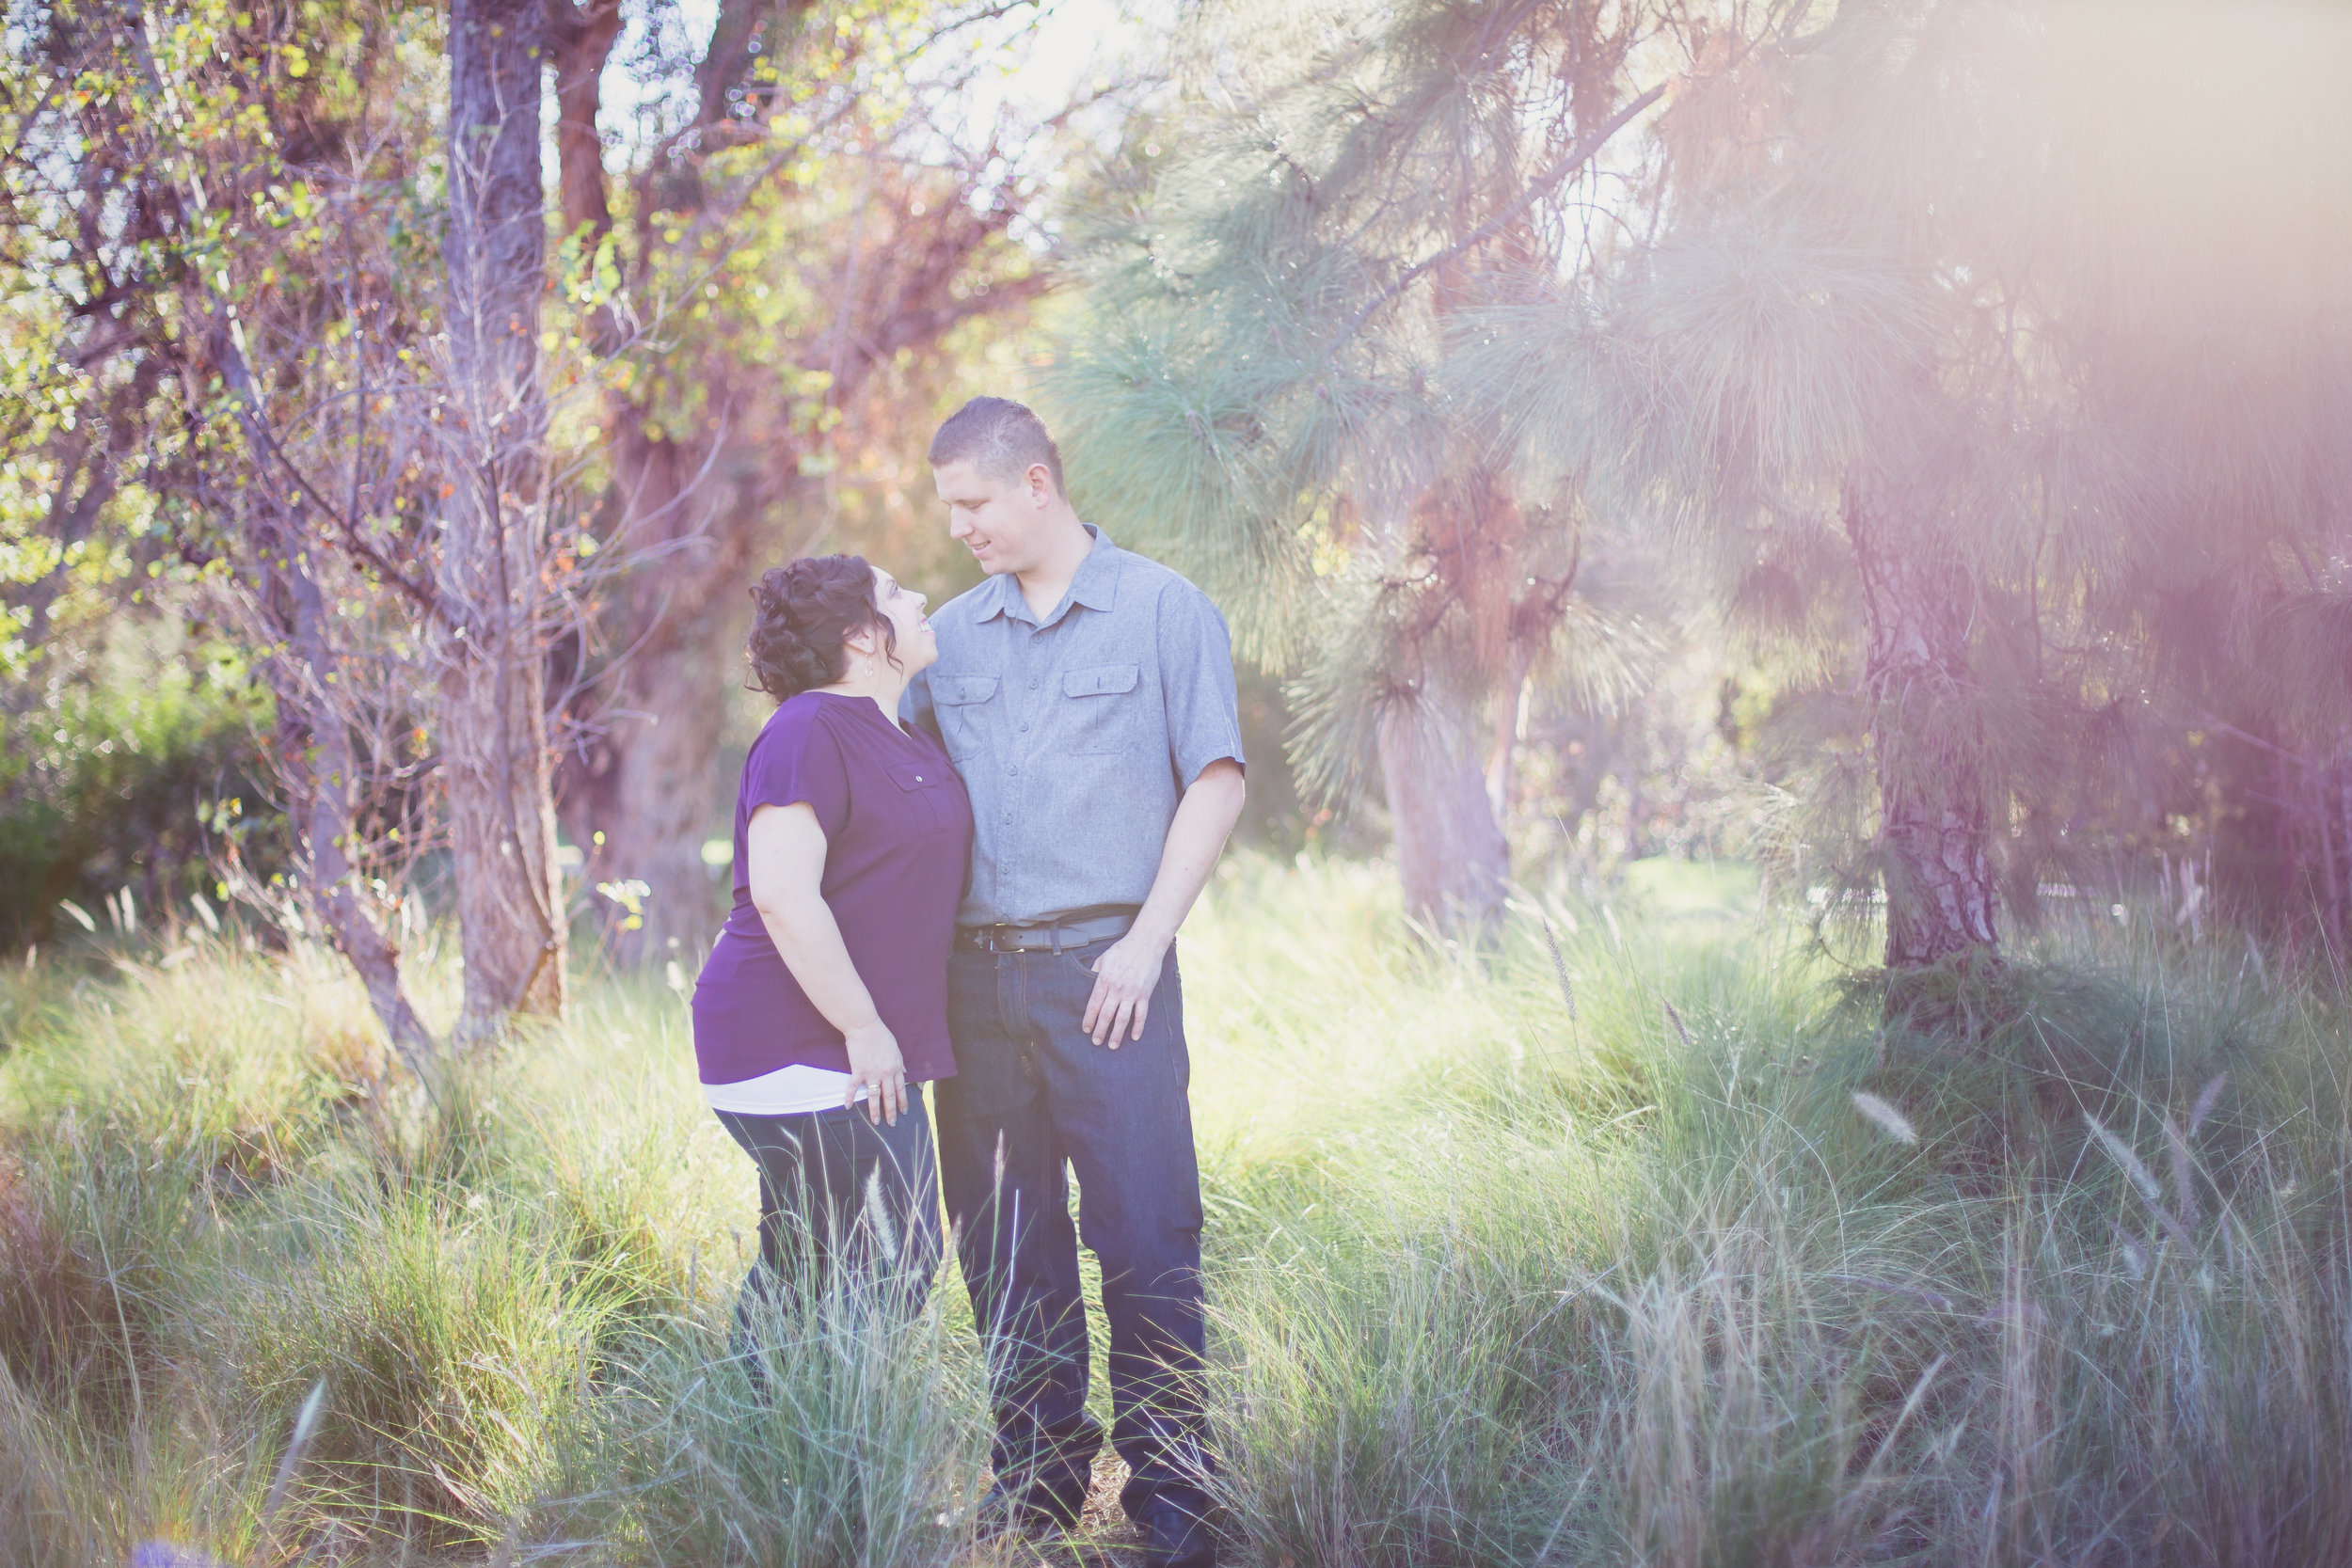 The lens flare on this is stunning, but the look of love makes me smile!